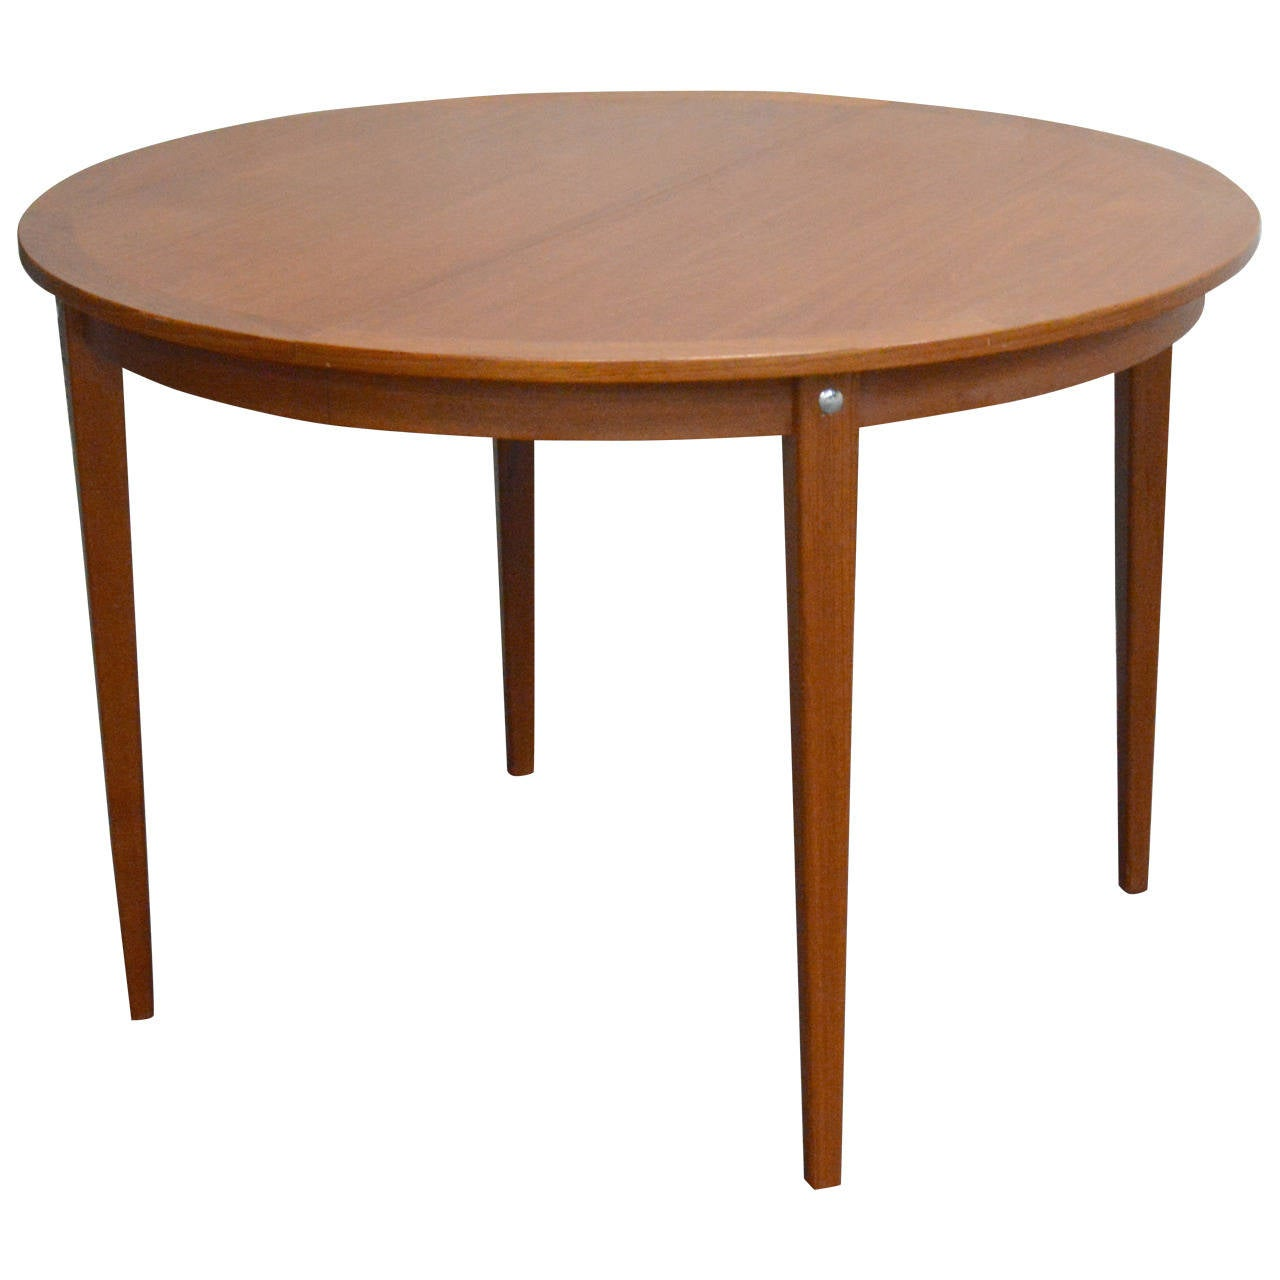 Modern round pedestal dining table - Mid Century Modern Round Swedish Teak Dining Table